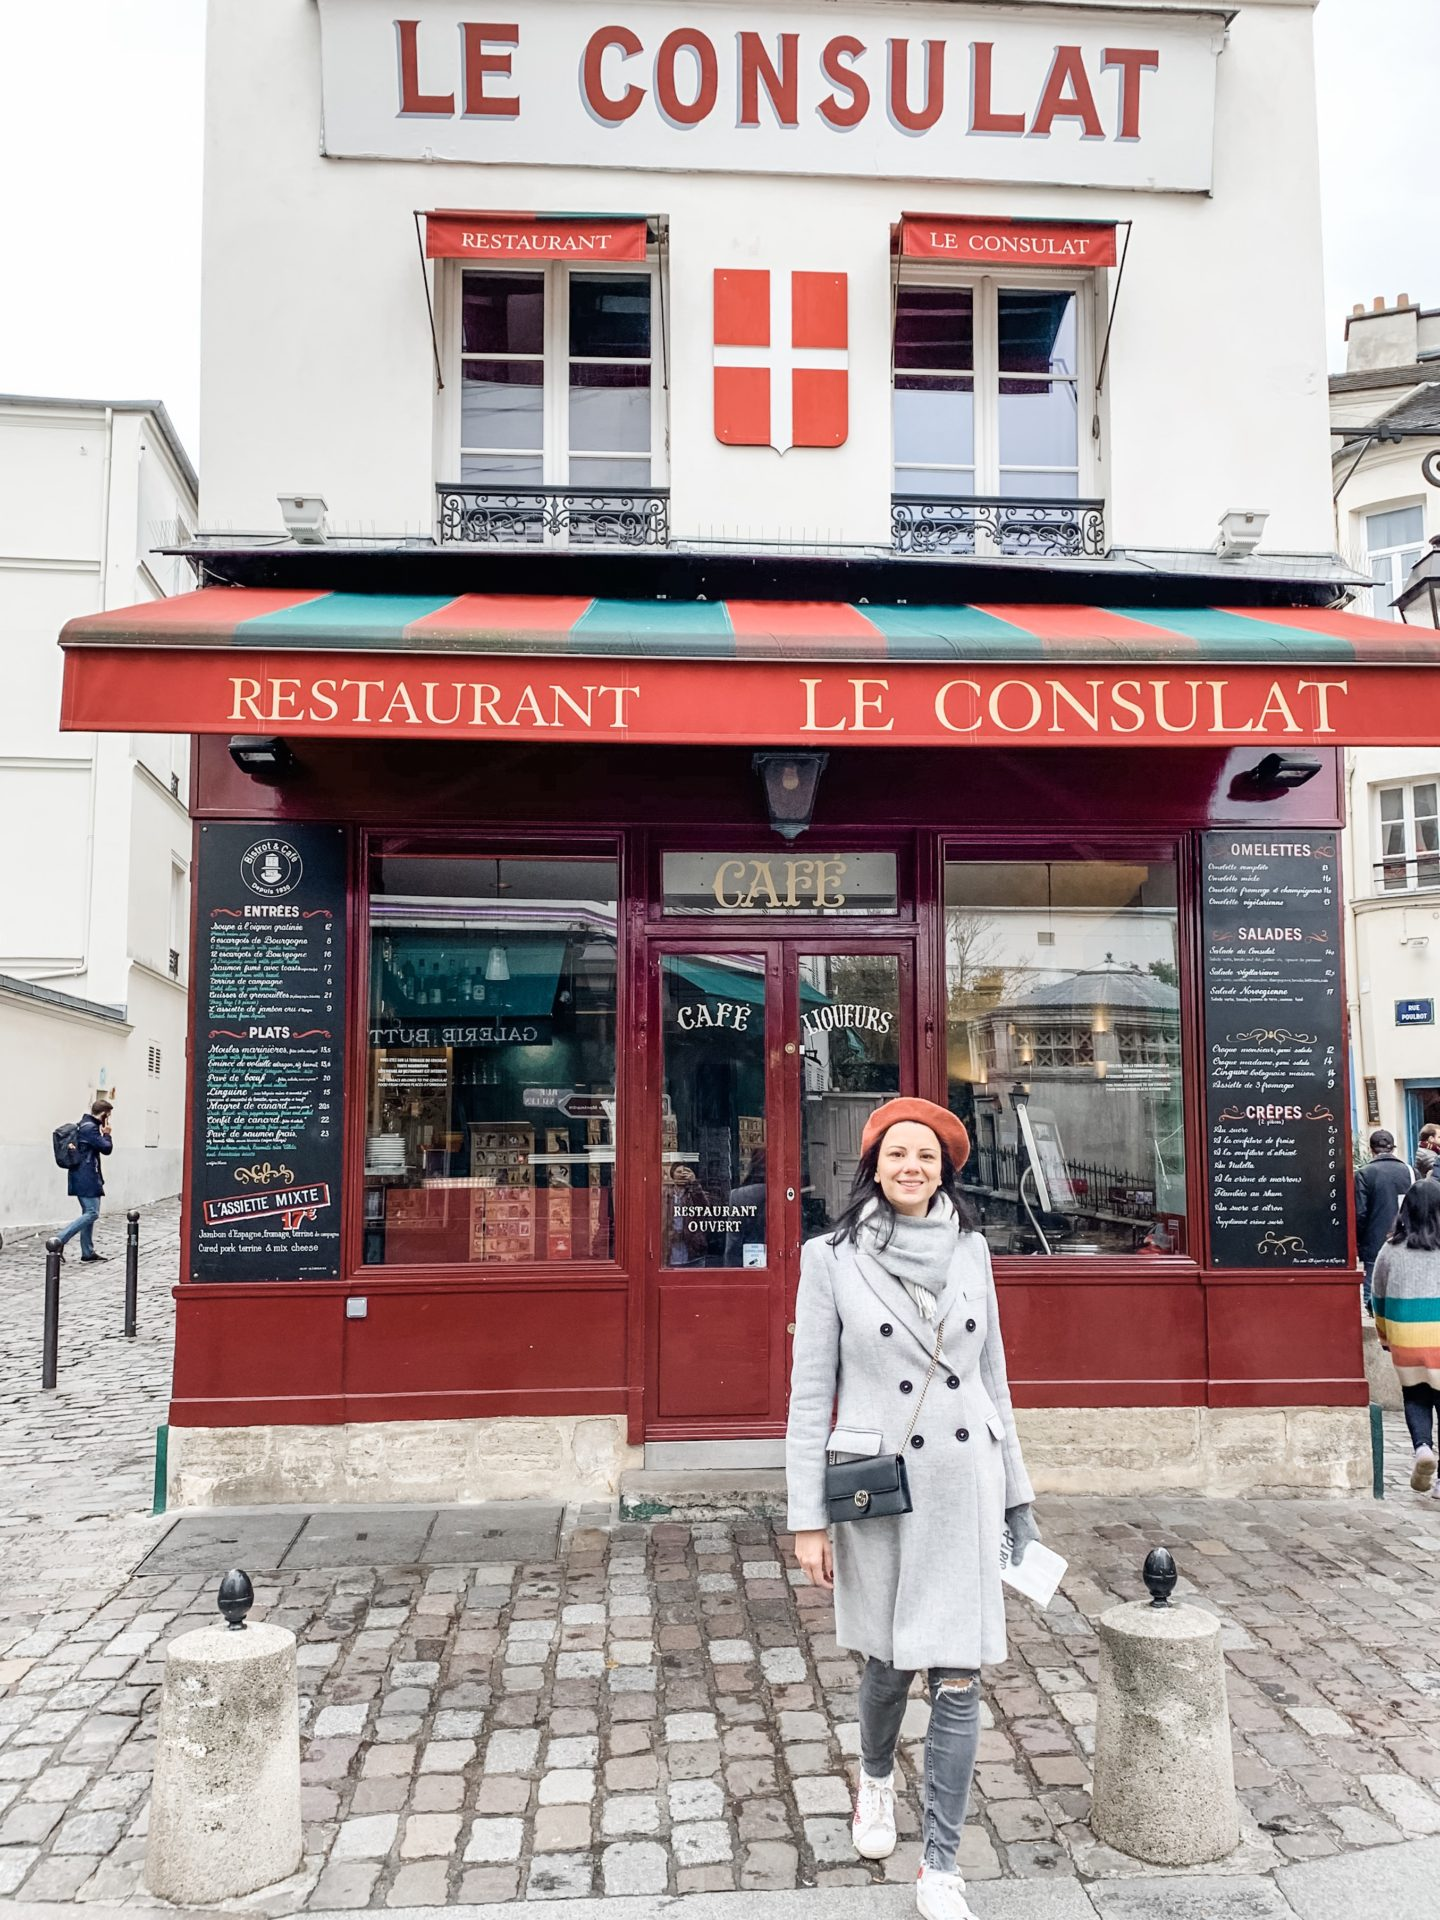 Le Consulat restaurant, the most instagrammable places in Paris